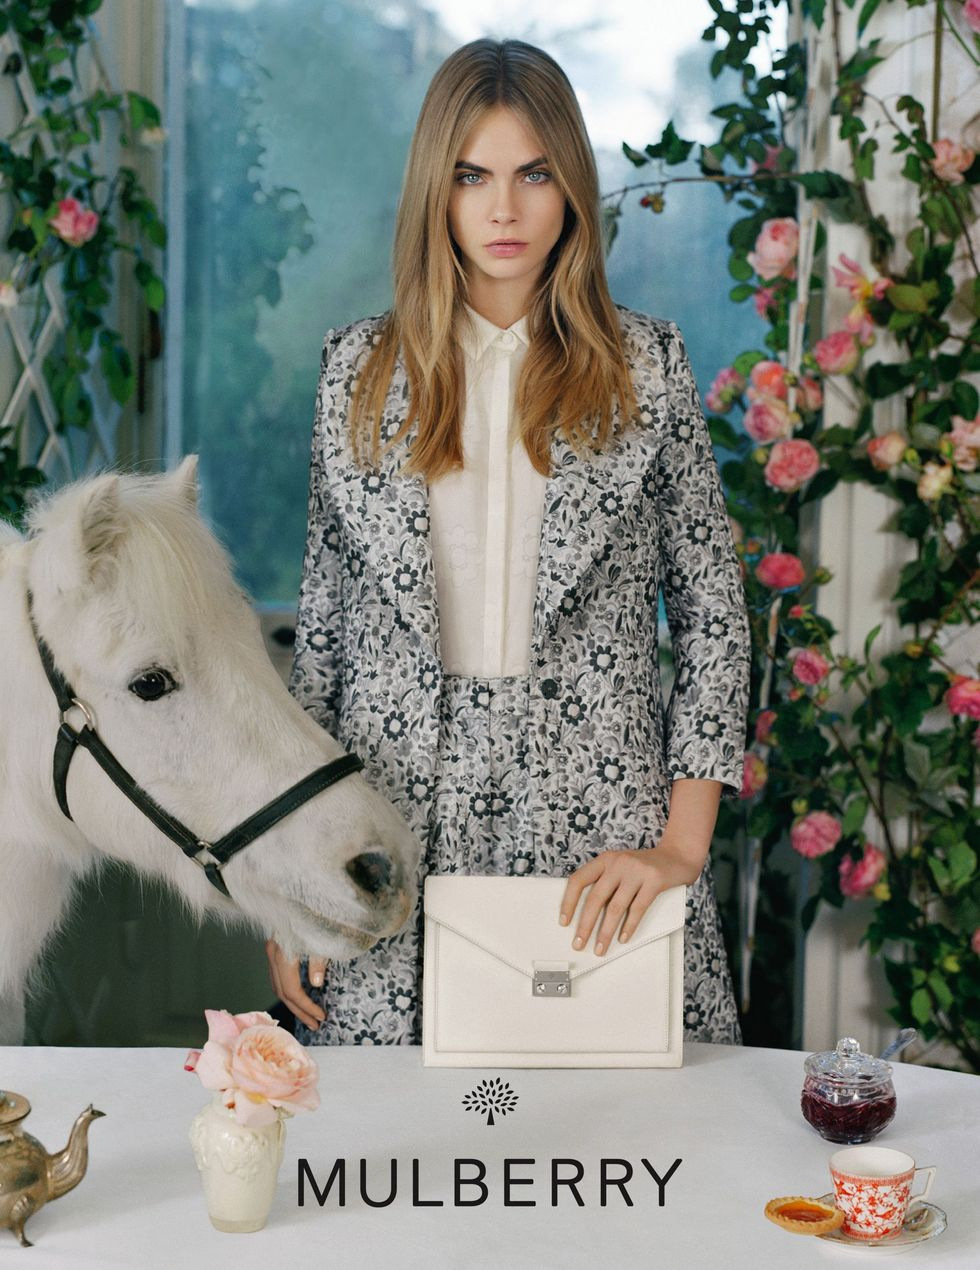 Mulberry SS 2014 Campaign featuring Cara delevigne, photographed by Tim Walker